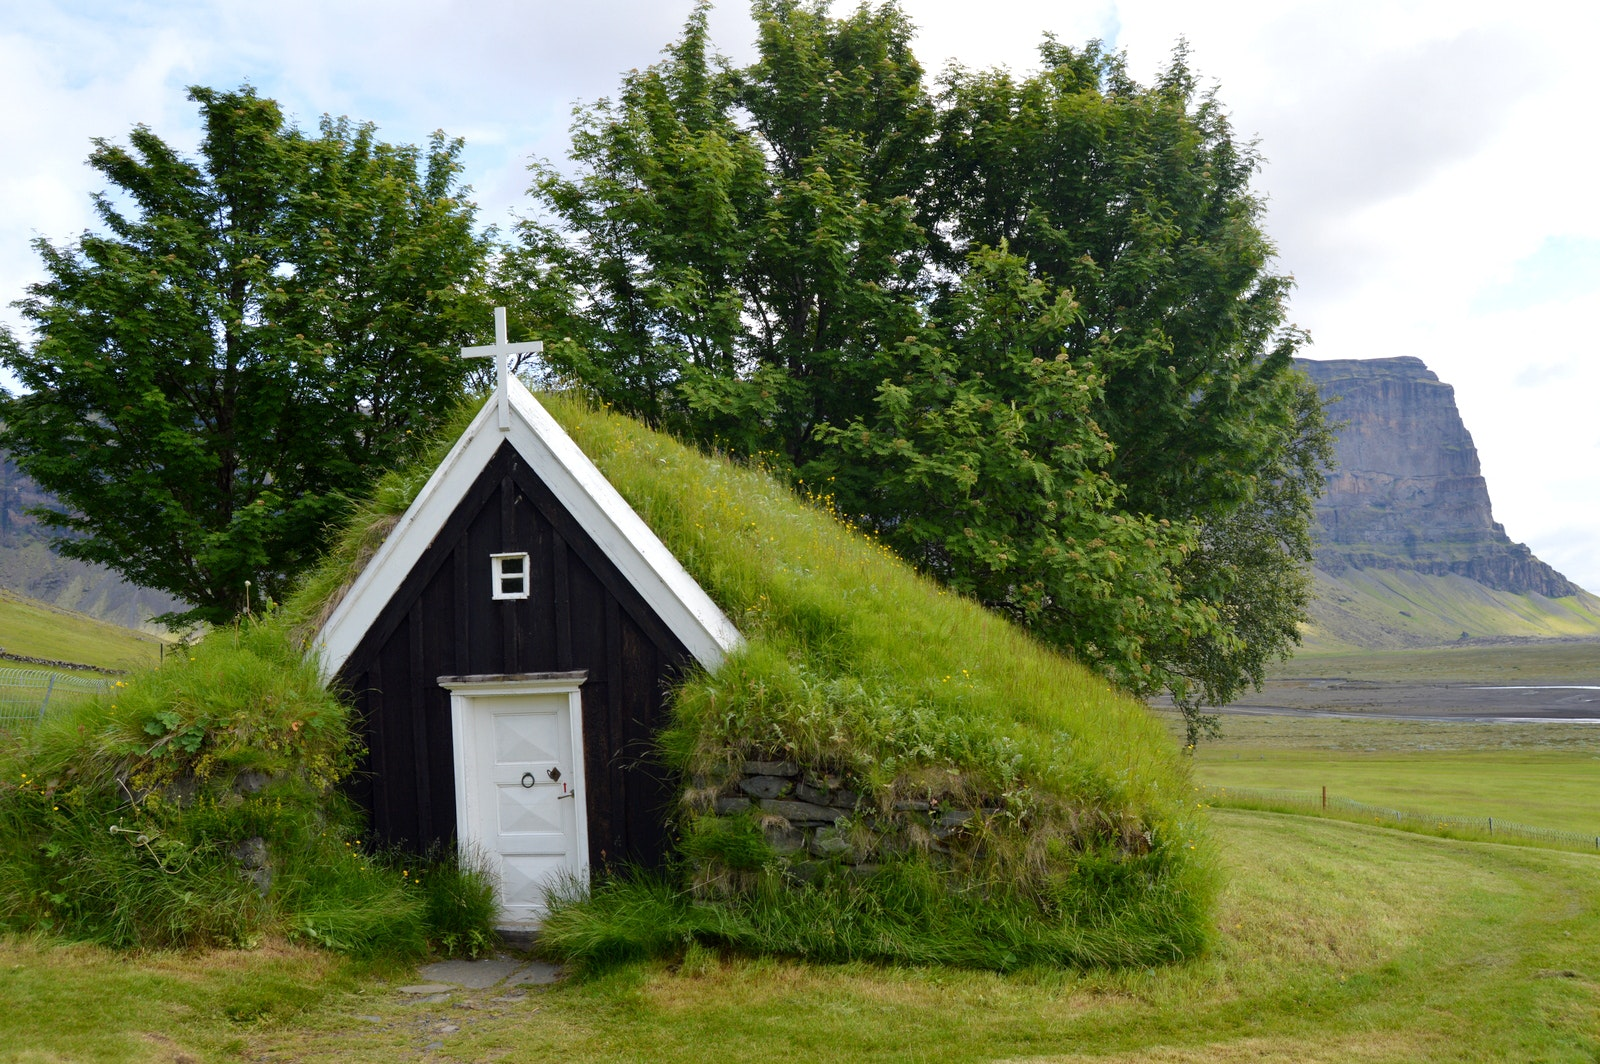 Núpsstaður Turf Church and Mt. Lómagnúpur in South-Iceland - the smallest Turf Church in Iceland